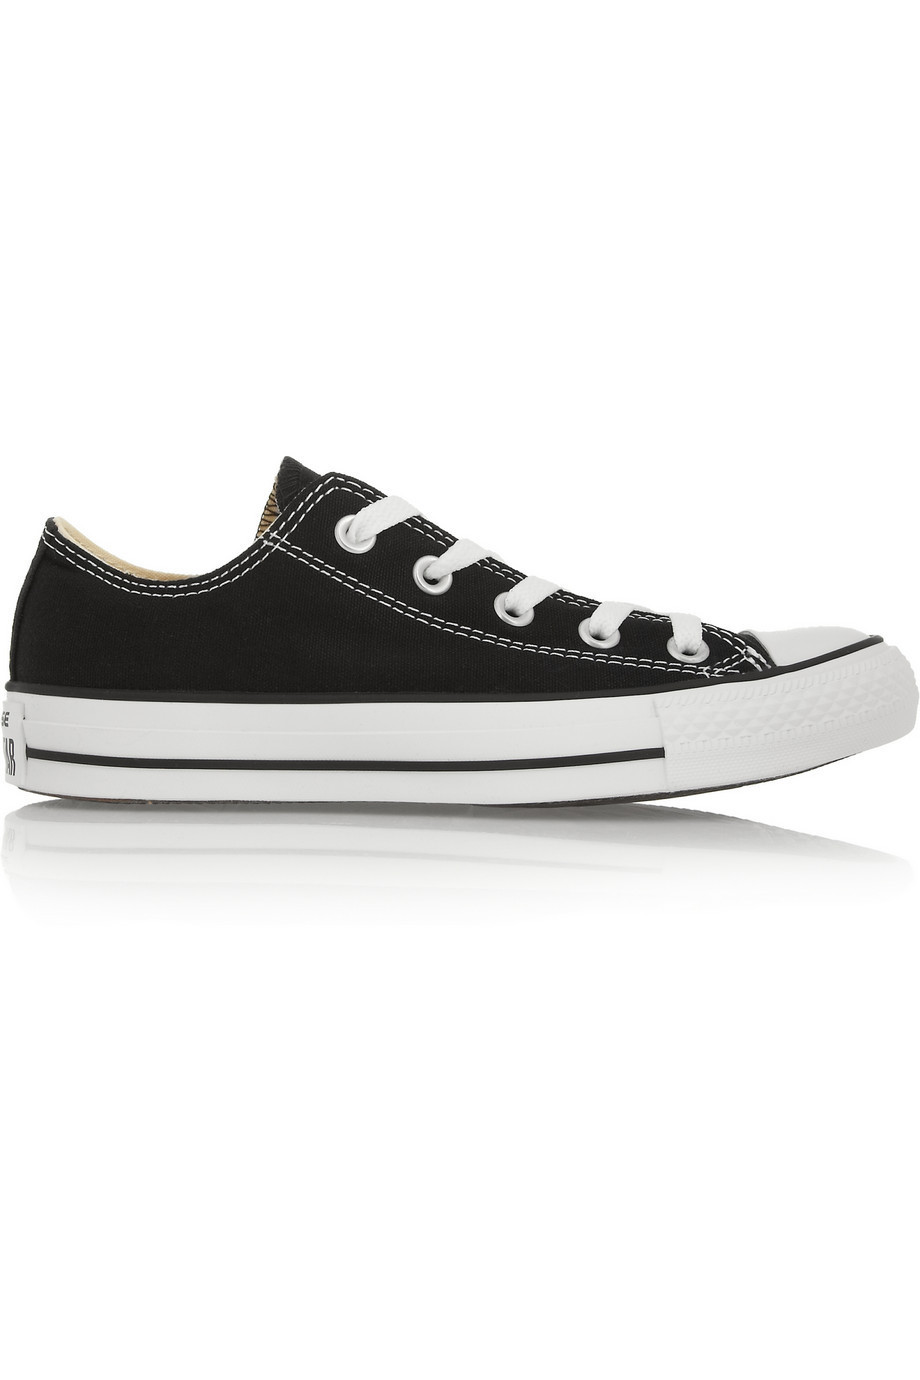 Converse Chuck Taylor All Star Canvas Sneakers in black